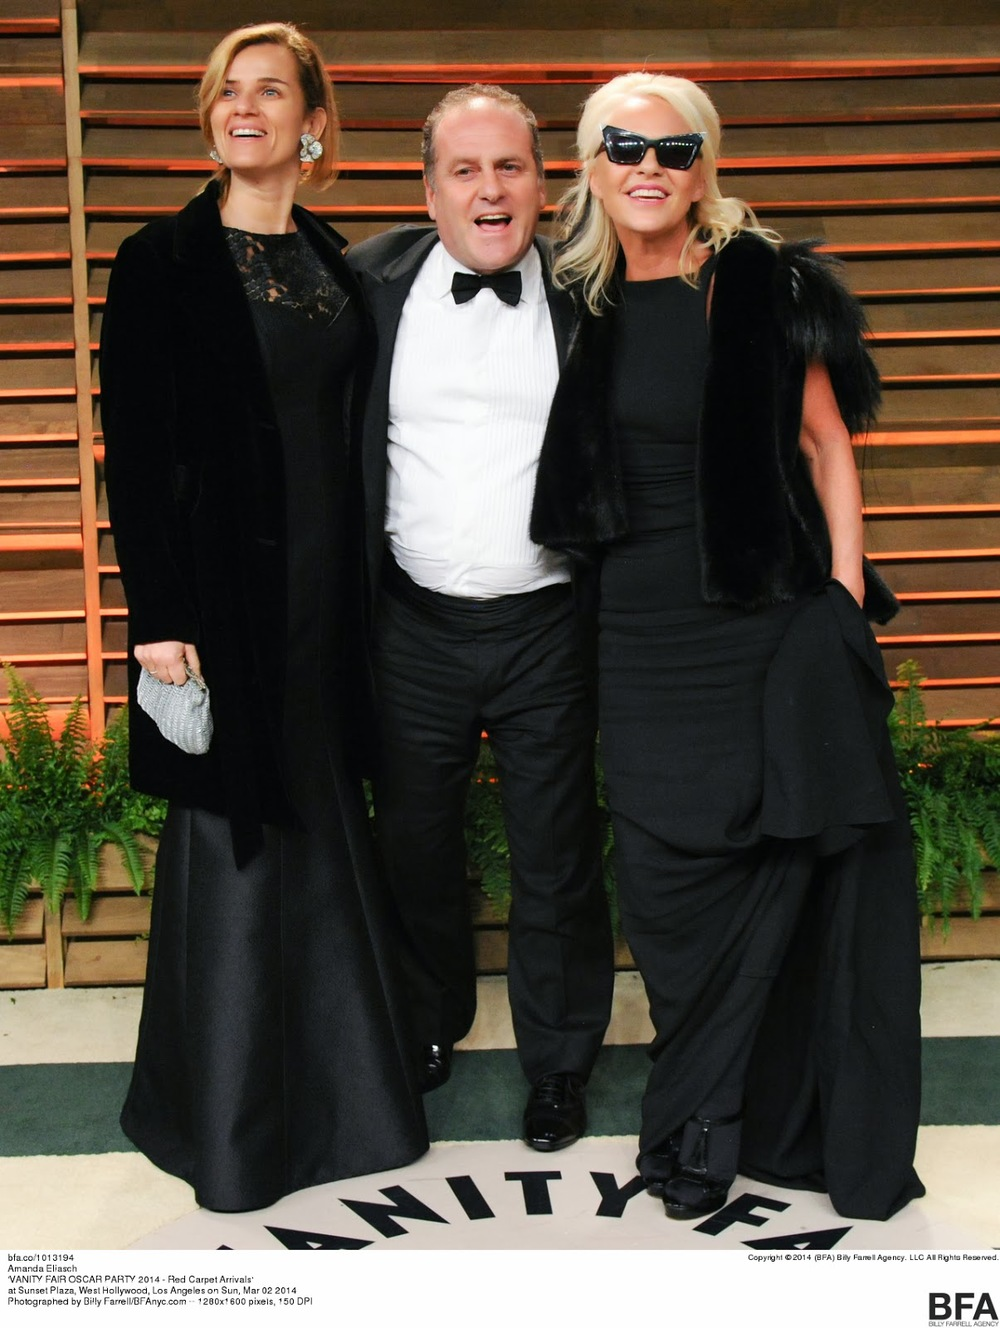 Concetta and Pascal Vicedomini, who hosted the Italian Film Festival in Los Angeles, and Amanda Eliasch at THE VANITY FAIR PARTY